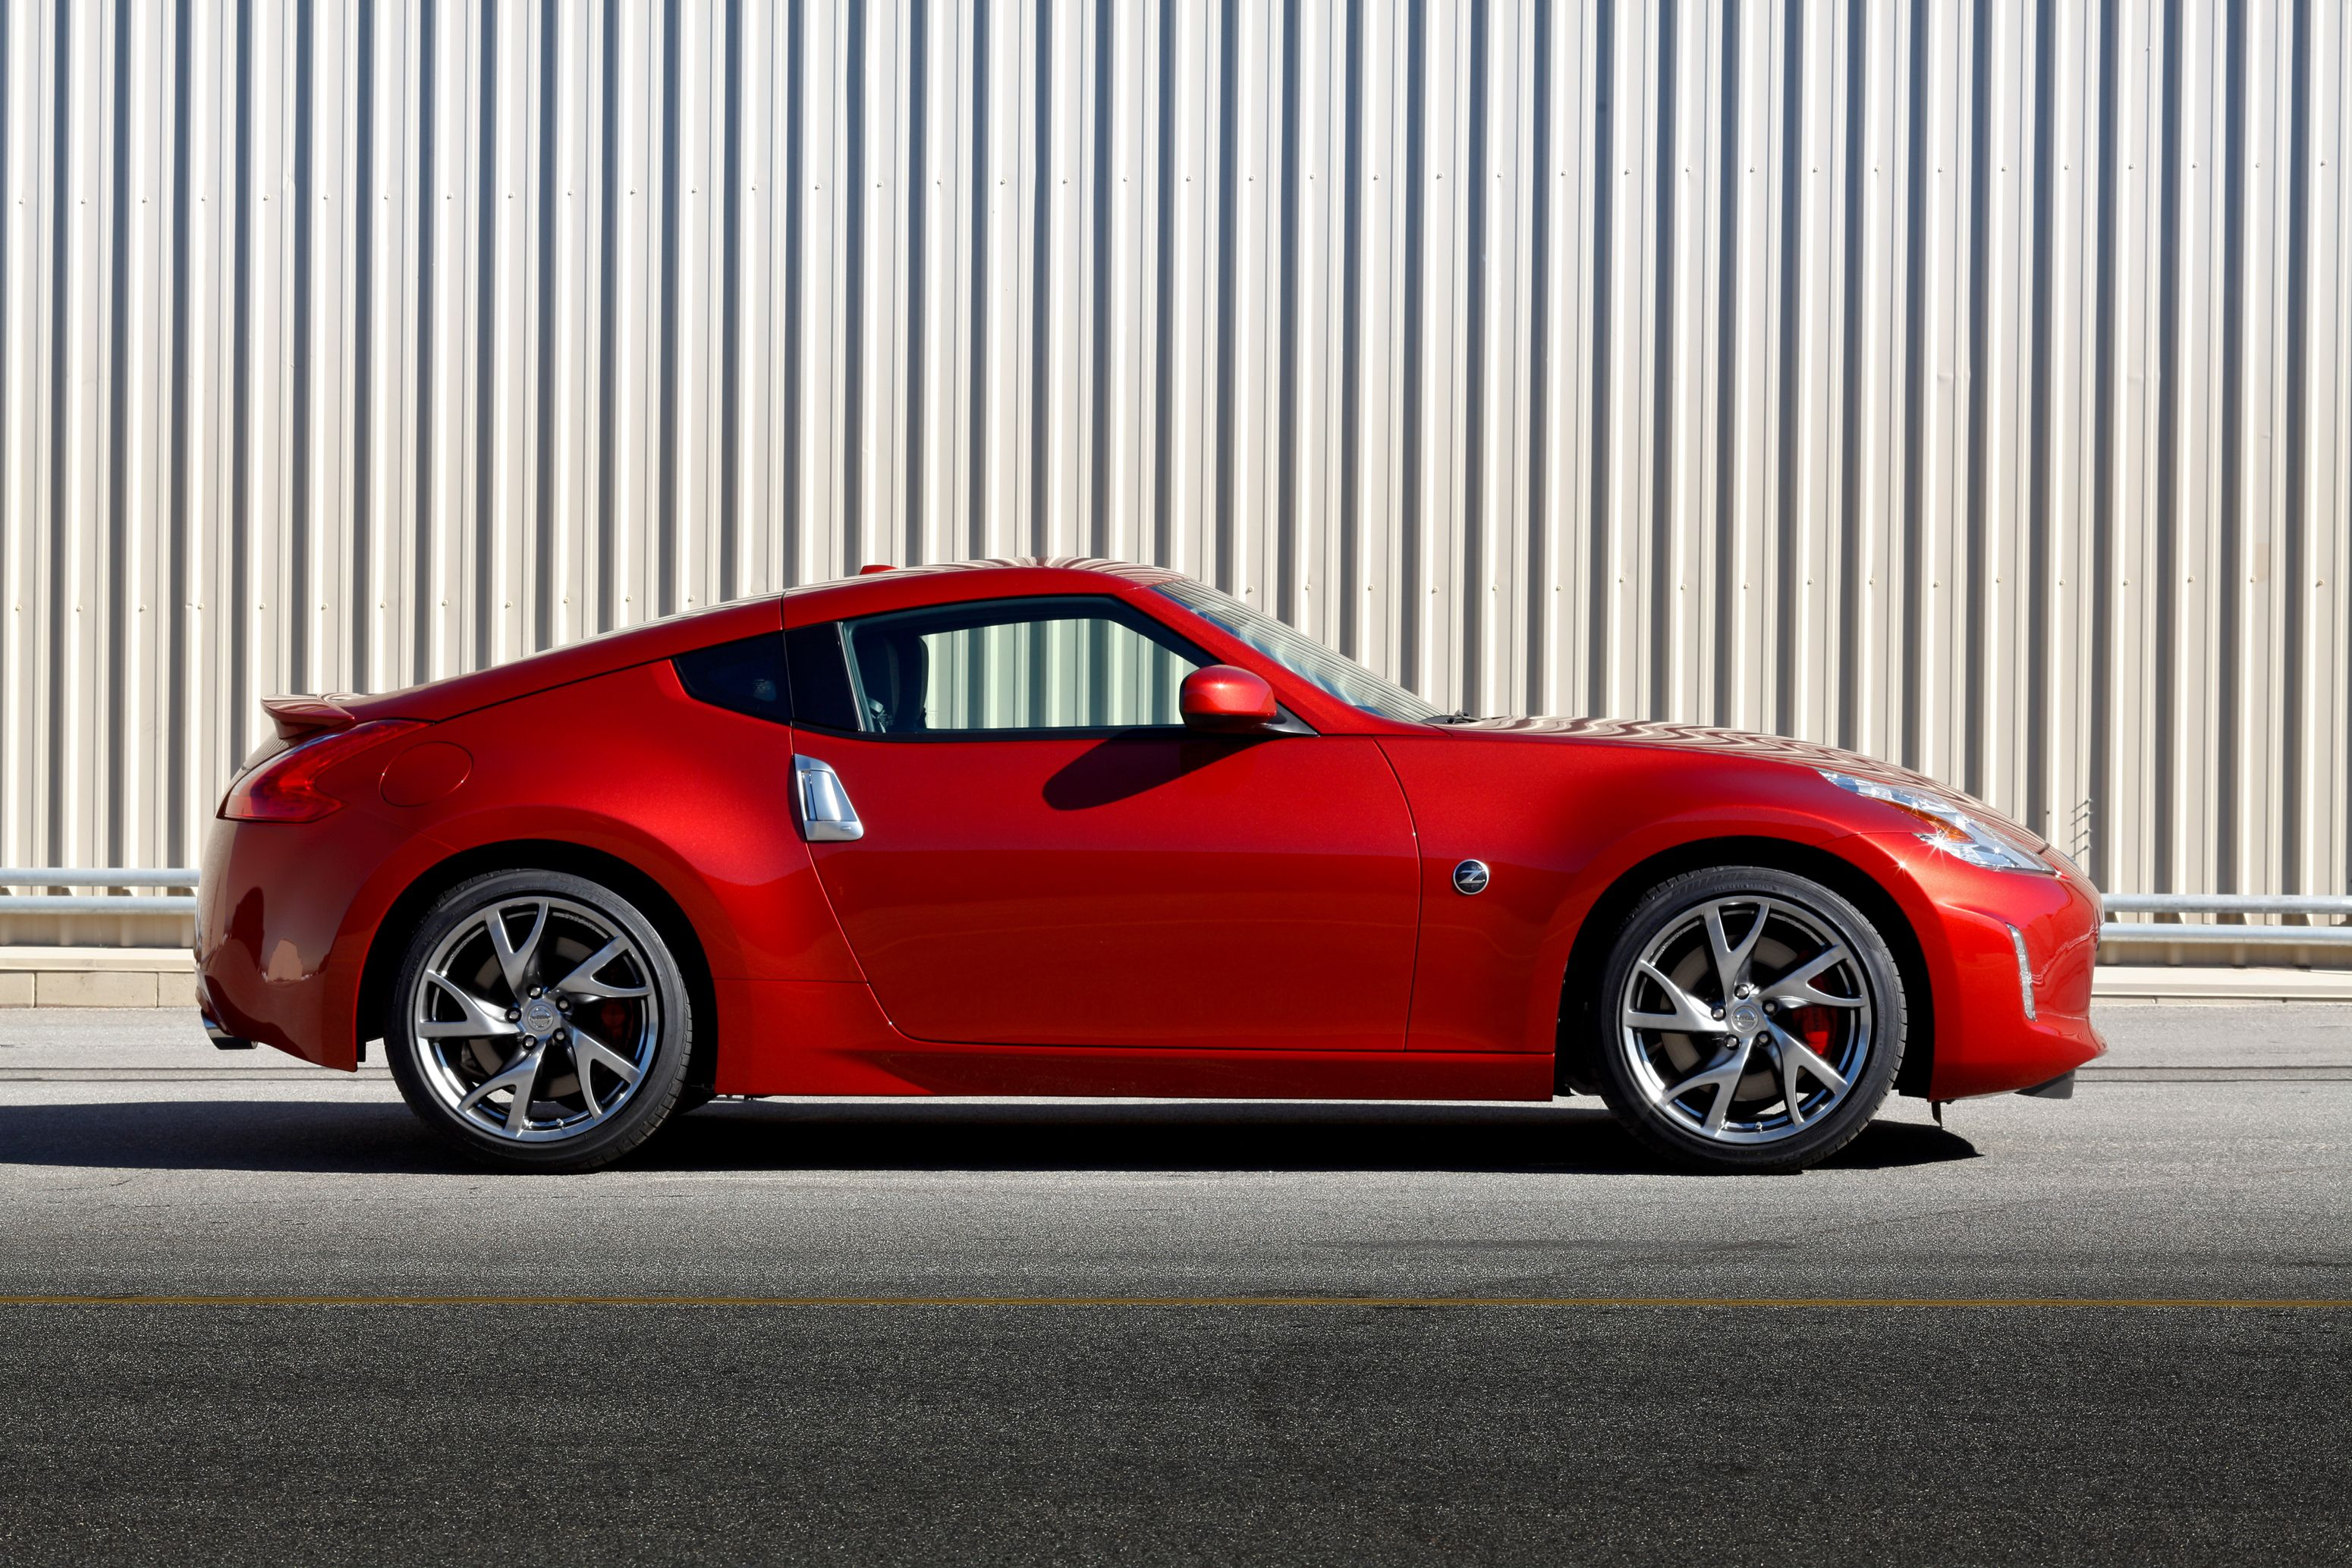 The Popular Nissan 370Z Coupe Receives A Fresh New Appearance For 2013    Designed To Keep The Legendary Sports Car Fresh And Exciting   While Still  Offering ...